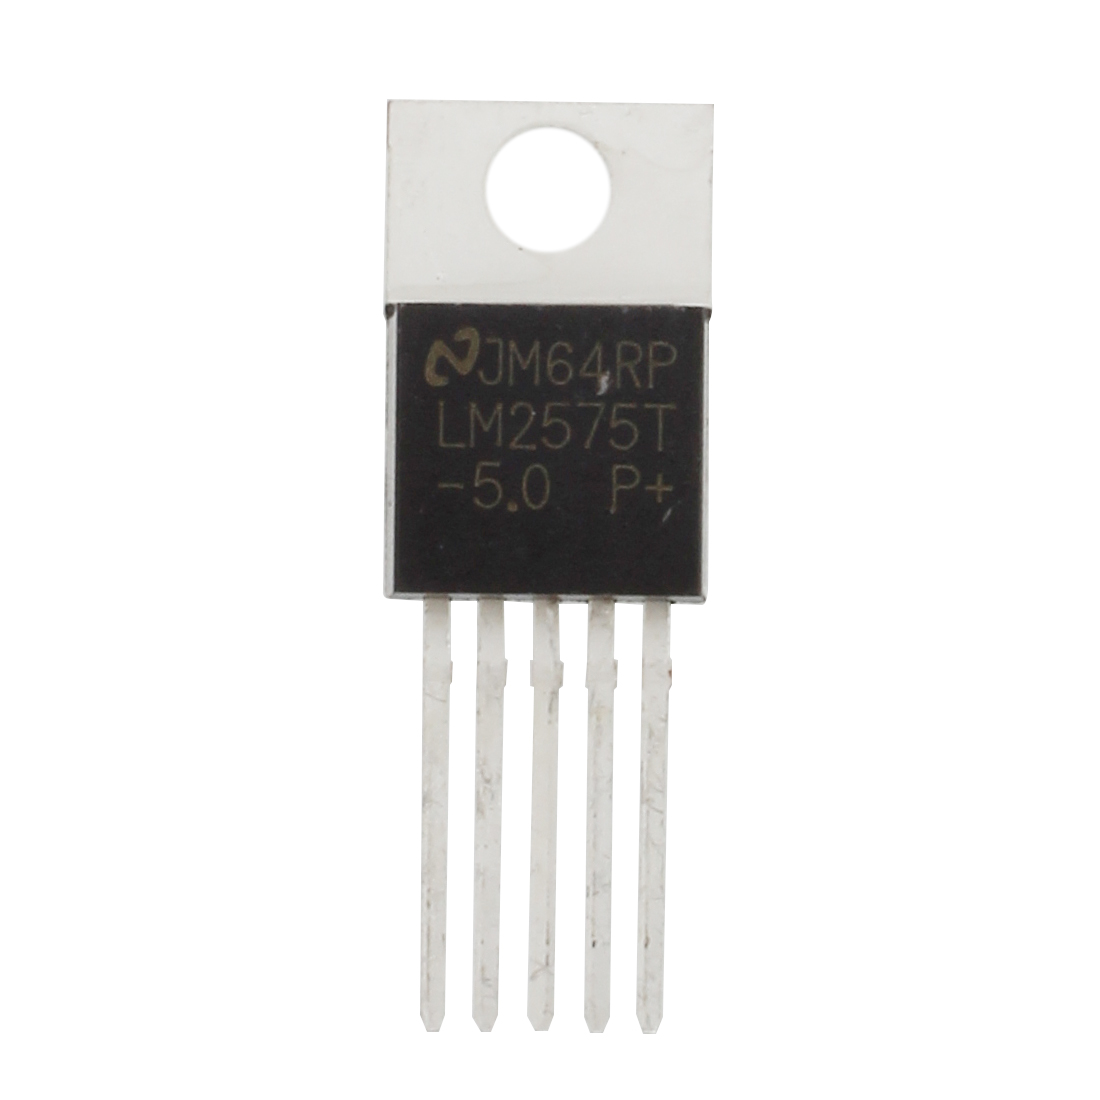 Lm2575 5v Step Down Voltage Regulator Circuit Controller Ic H8e9 Ebay Switching On Schematic